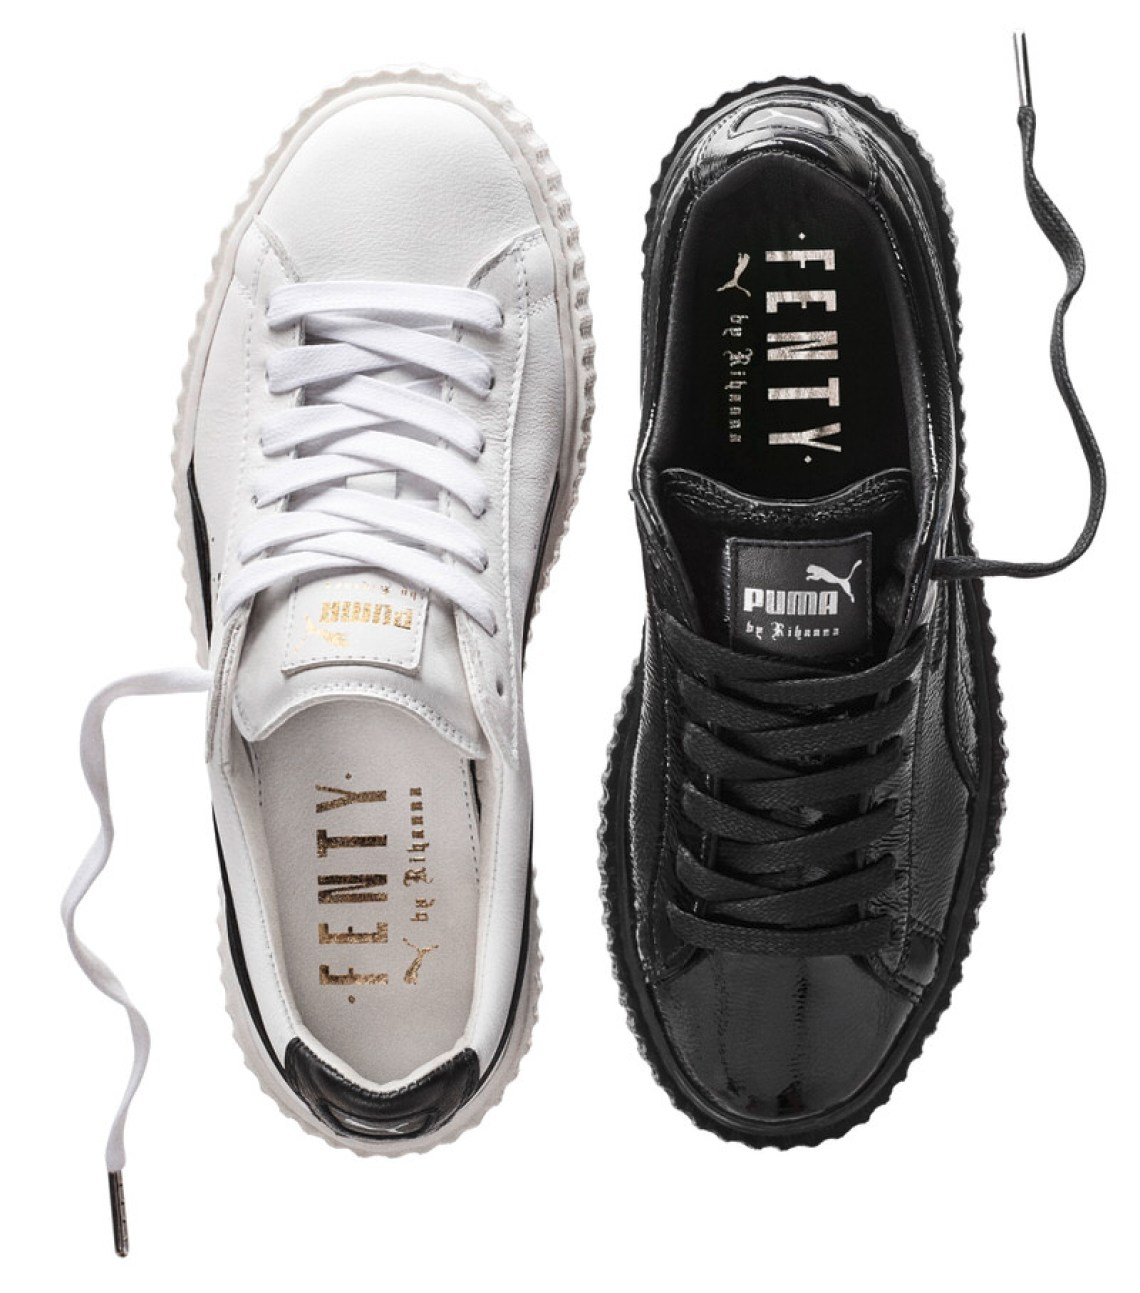 best sneakers 13948 bd284 Rihanna and PUMA Releasing Velvet Creepers Next Month | Nice ...